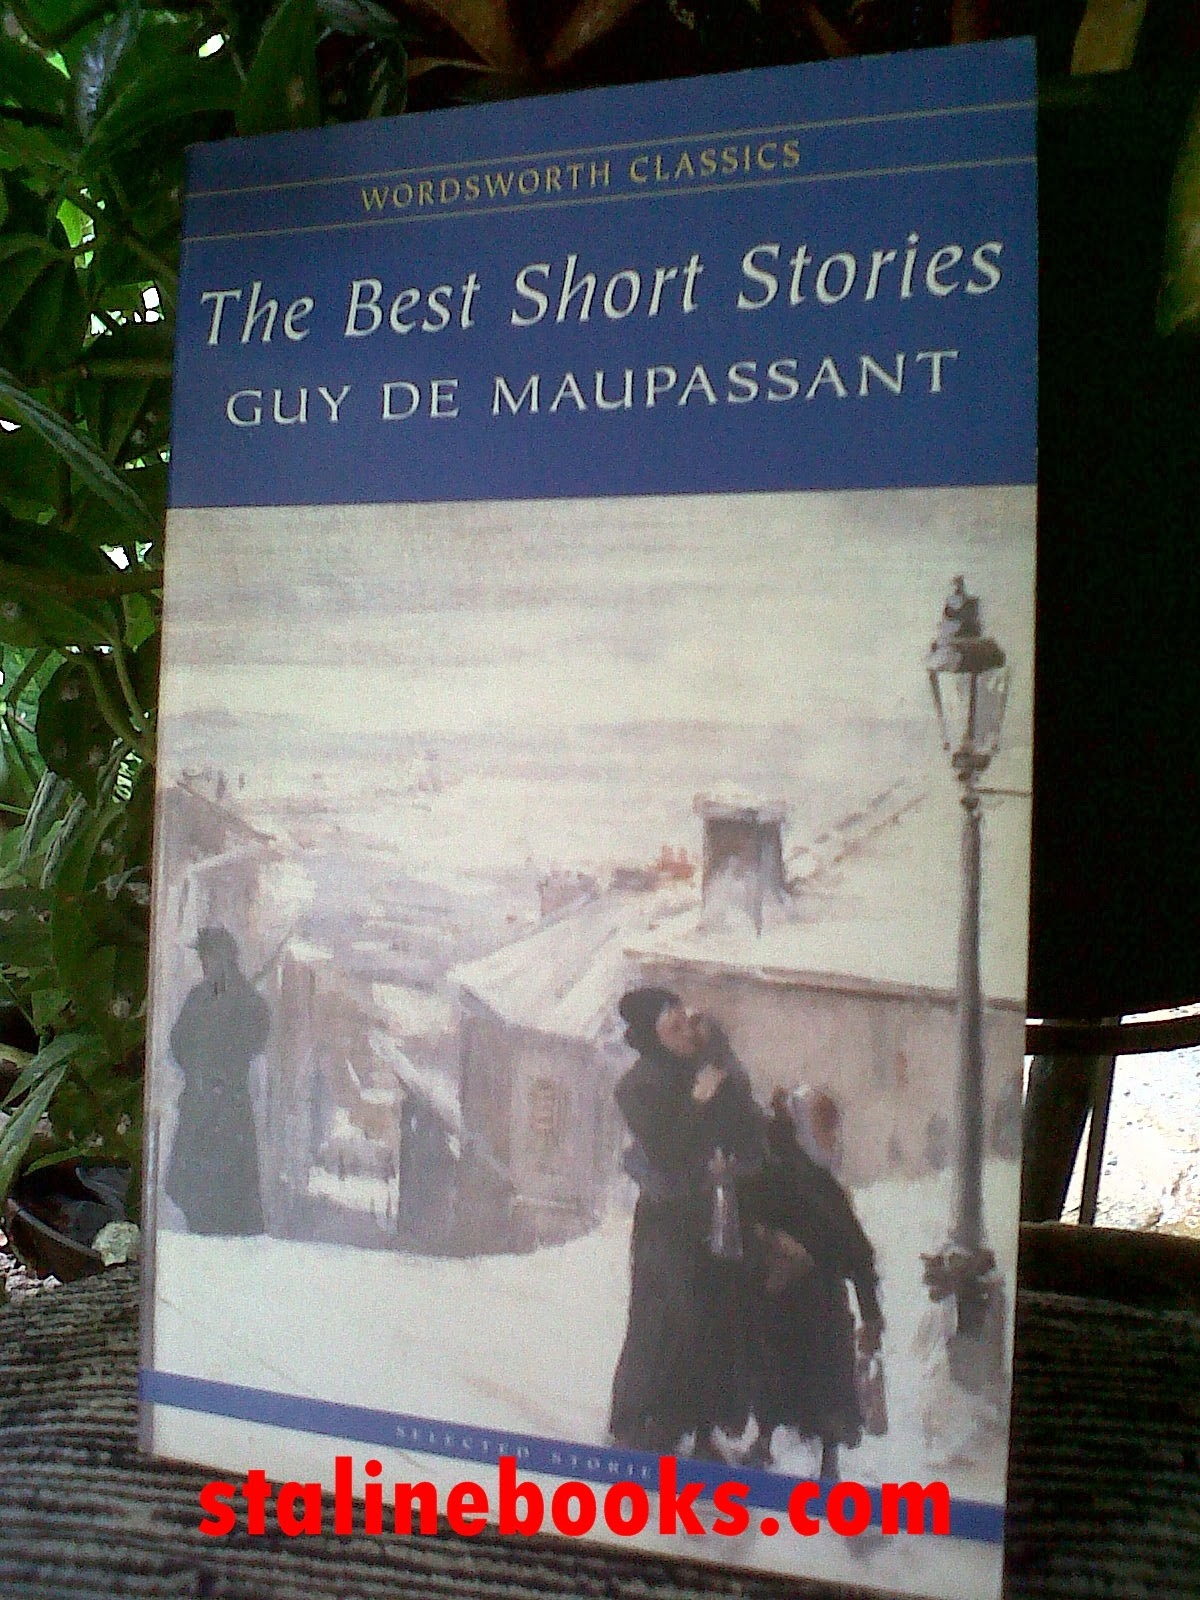 stasiun buku online novel asing title the best short stories by guy de maupassant published by wordsworth classics 1997 page 237 soft cover used book condition good price 35 000